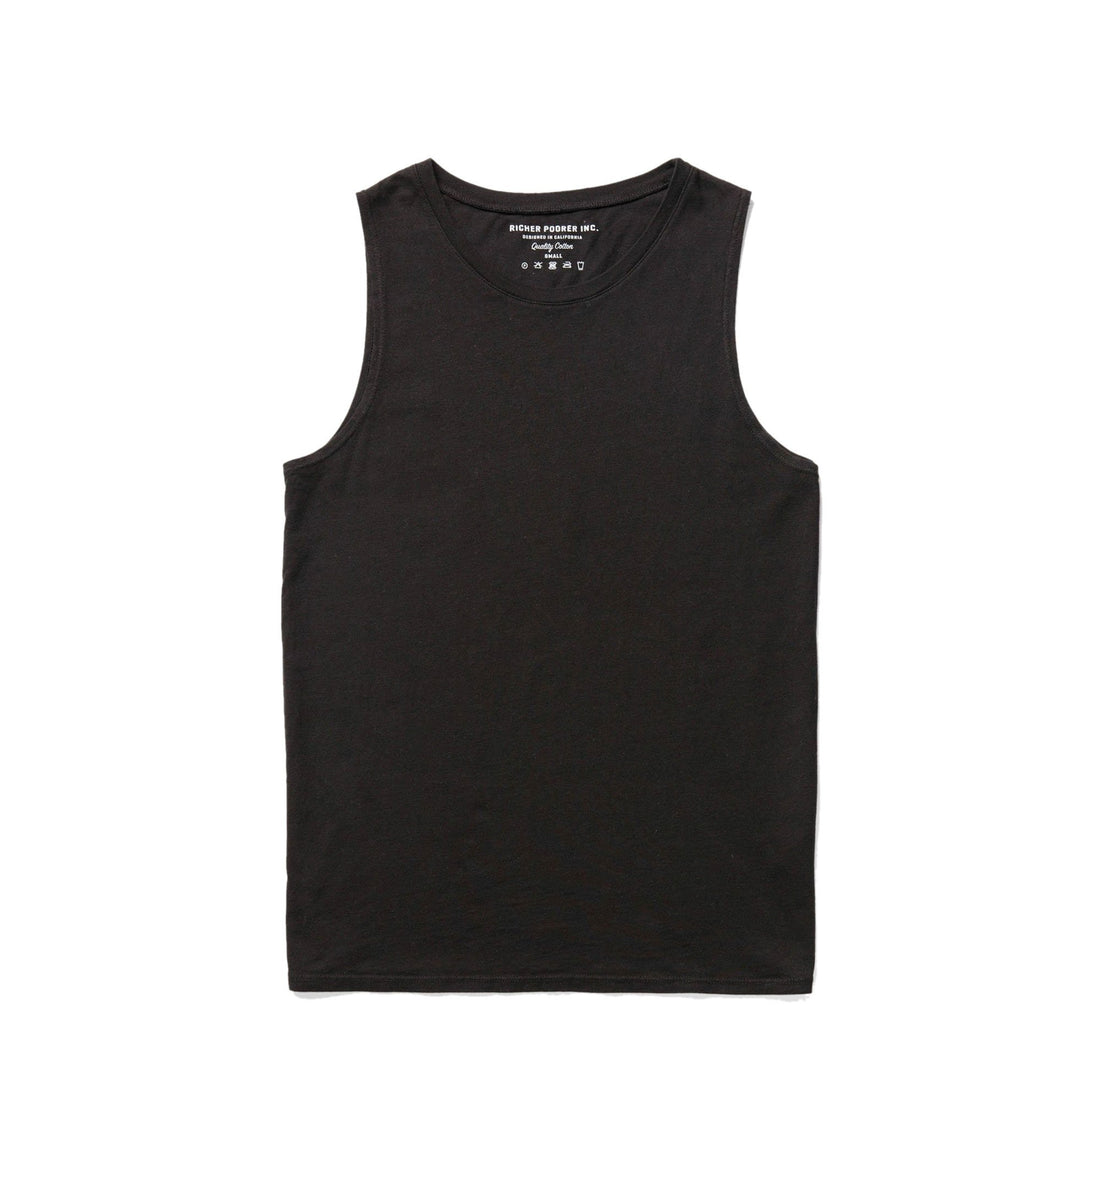 Richer Poorer Inc Women's Muscle Tank - Tops - Iron and Resin